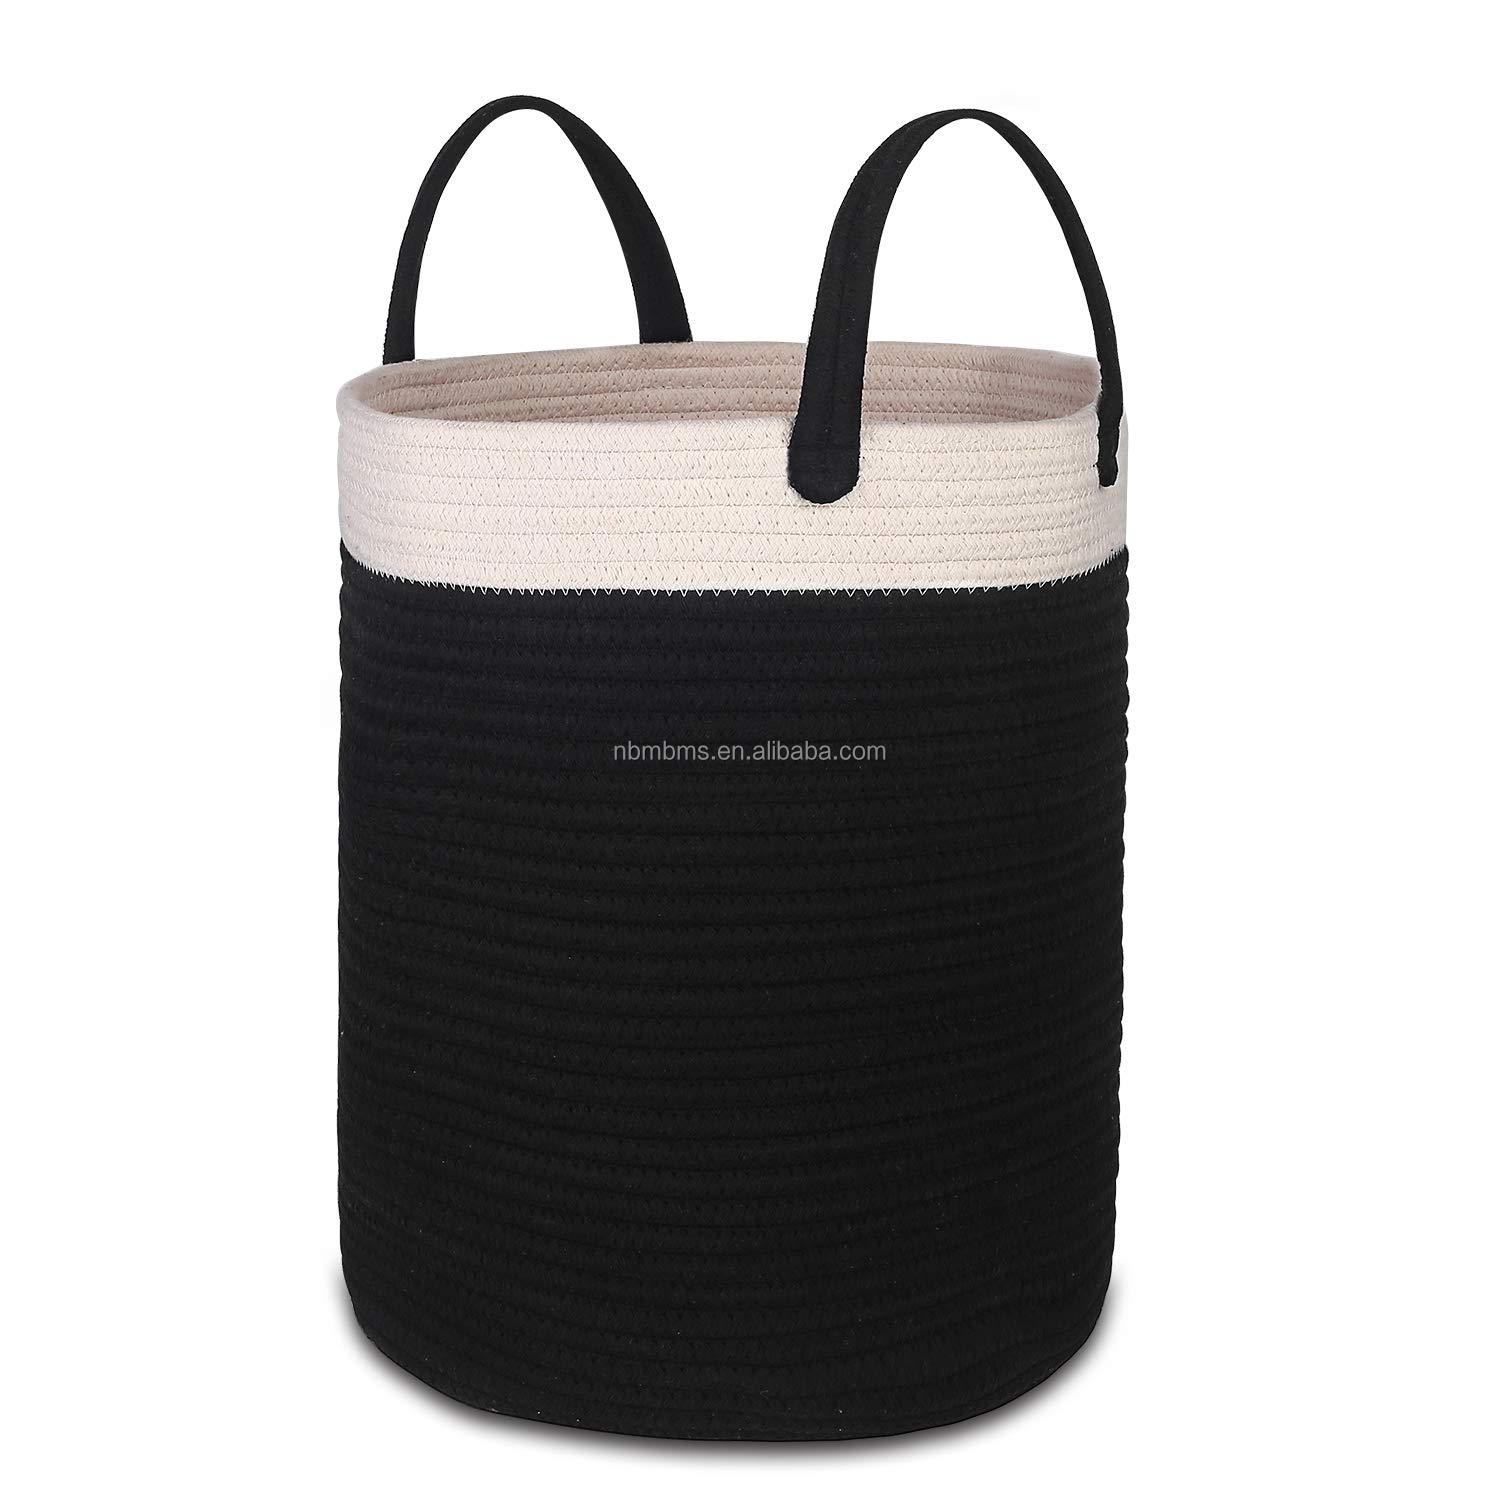 QJMAX Easy Carrying Collapsible Cotton Rope Storage Basket For Bathroom Towel